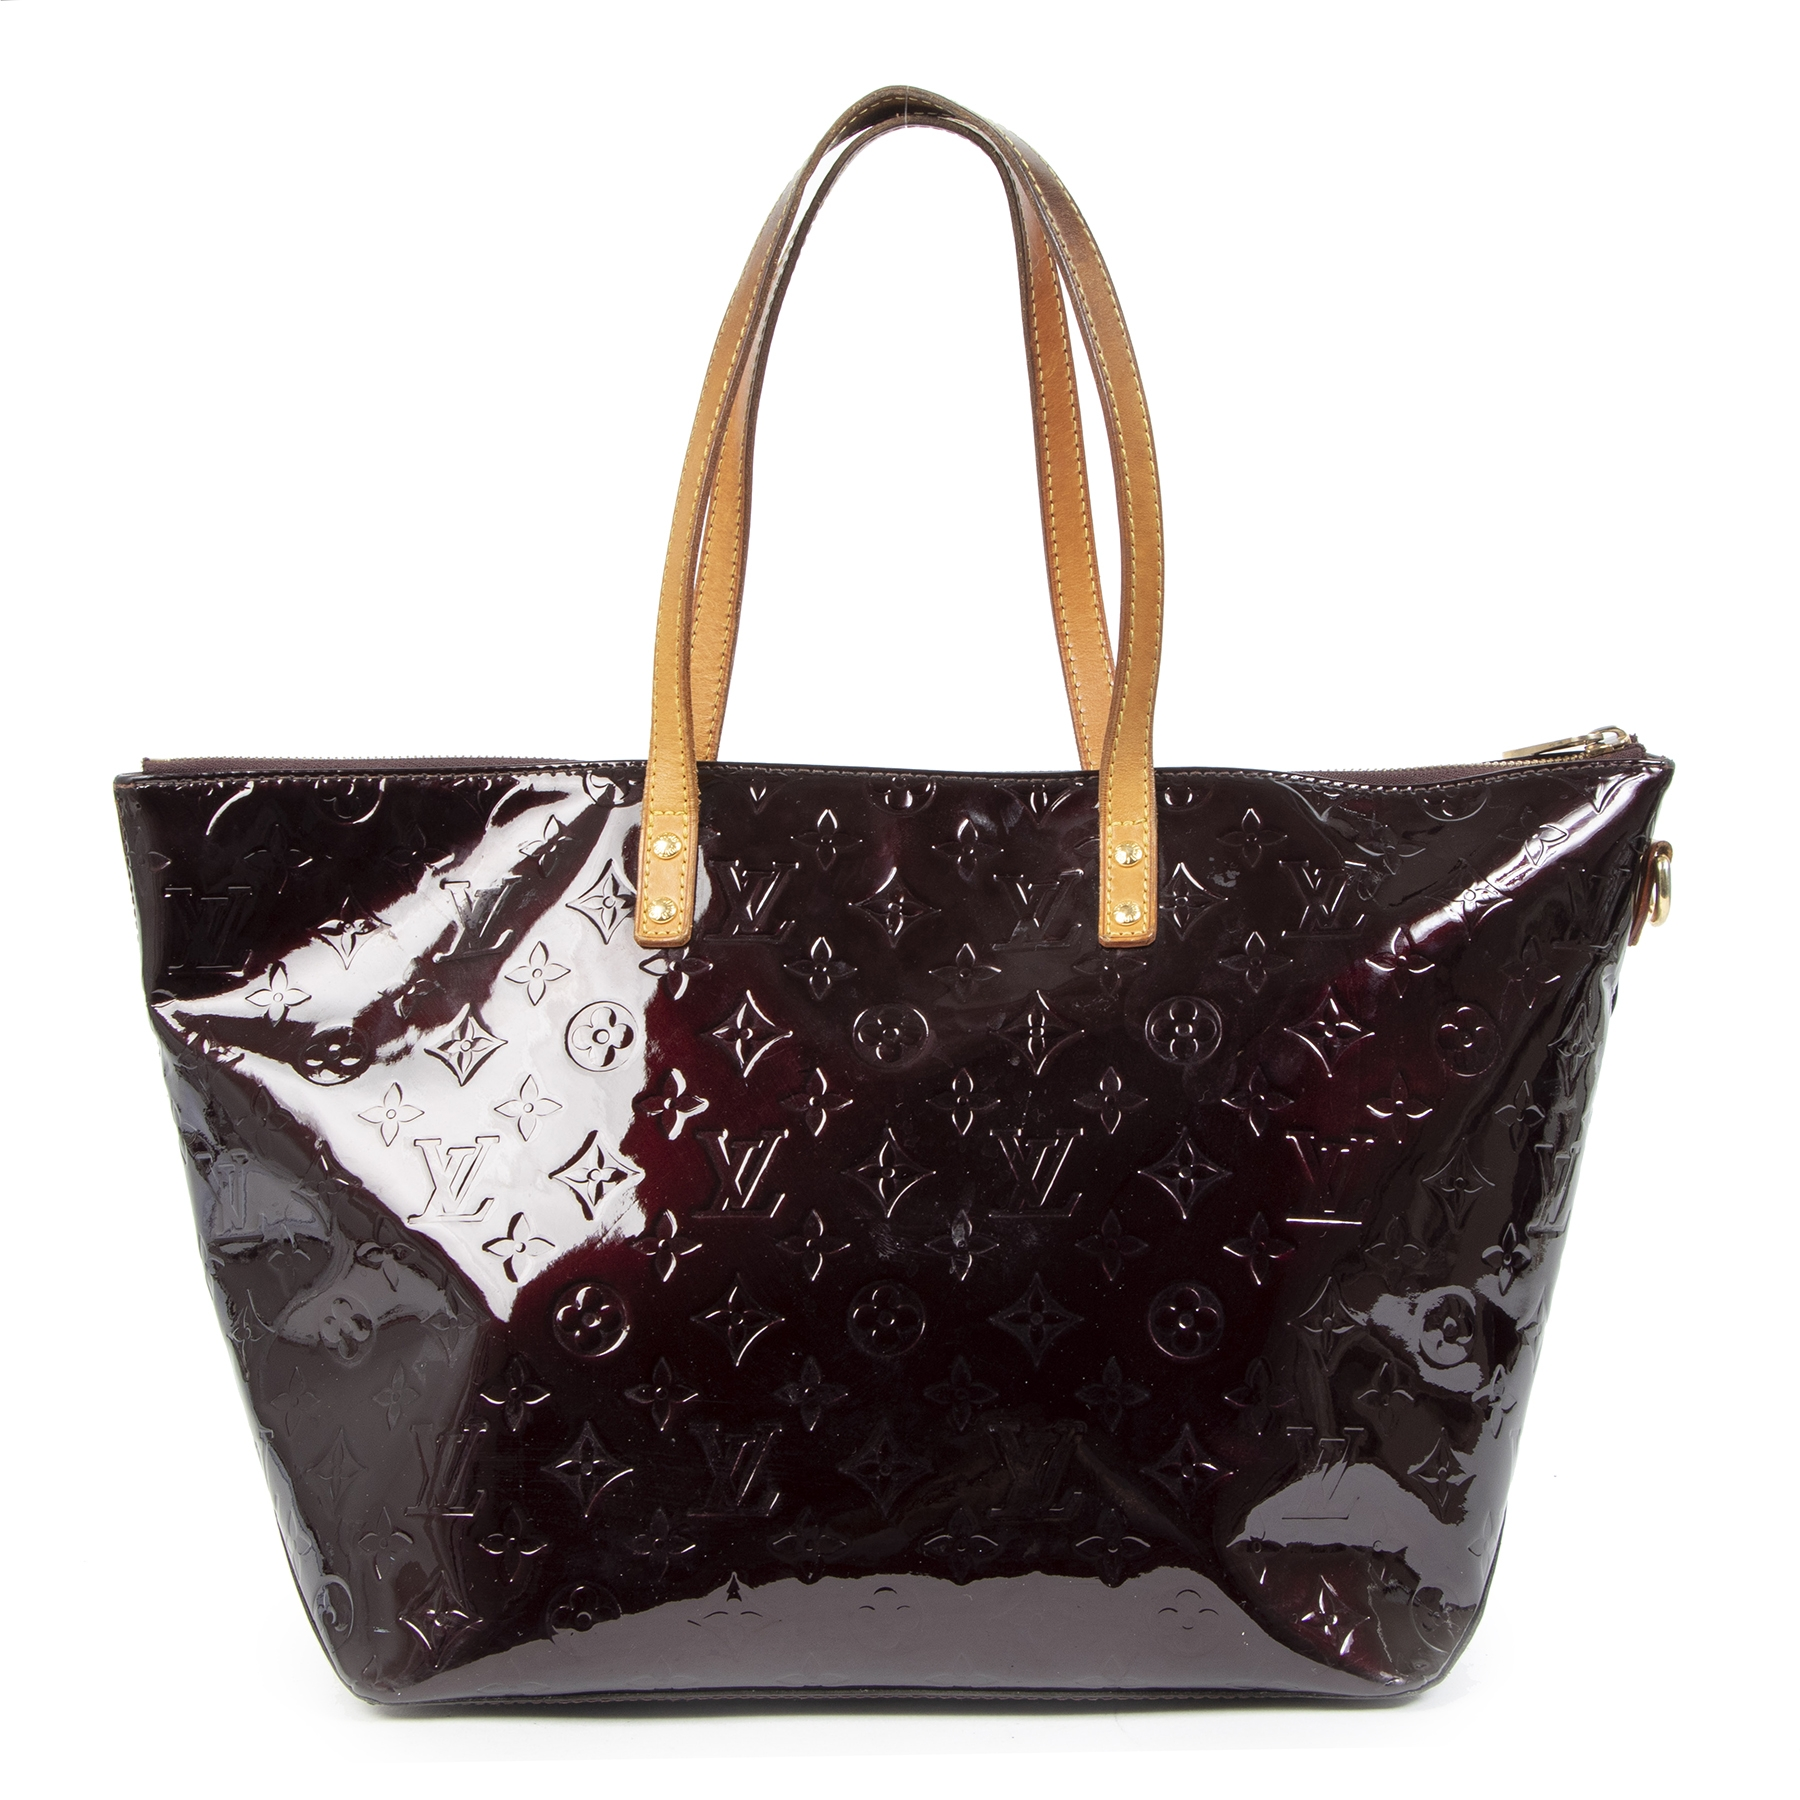 Authentic second-hand vintage Louis Vuitton Bellevue Vernis Amarante Tote buy online webshop LabelLOV